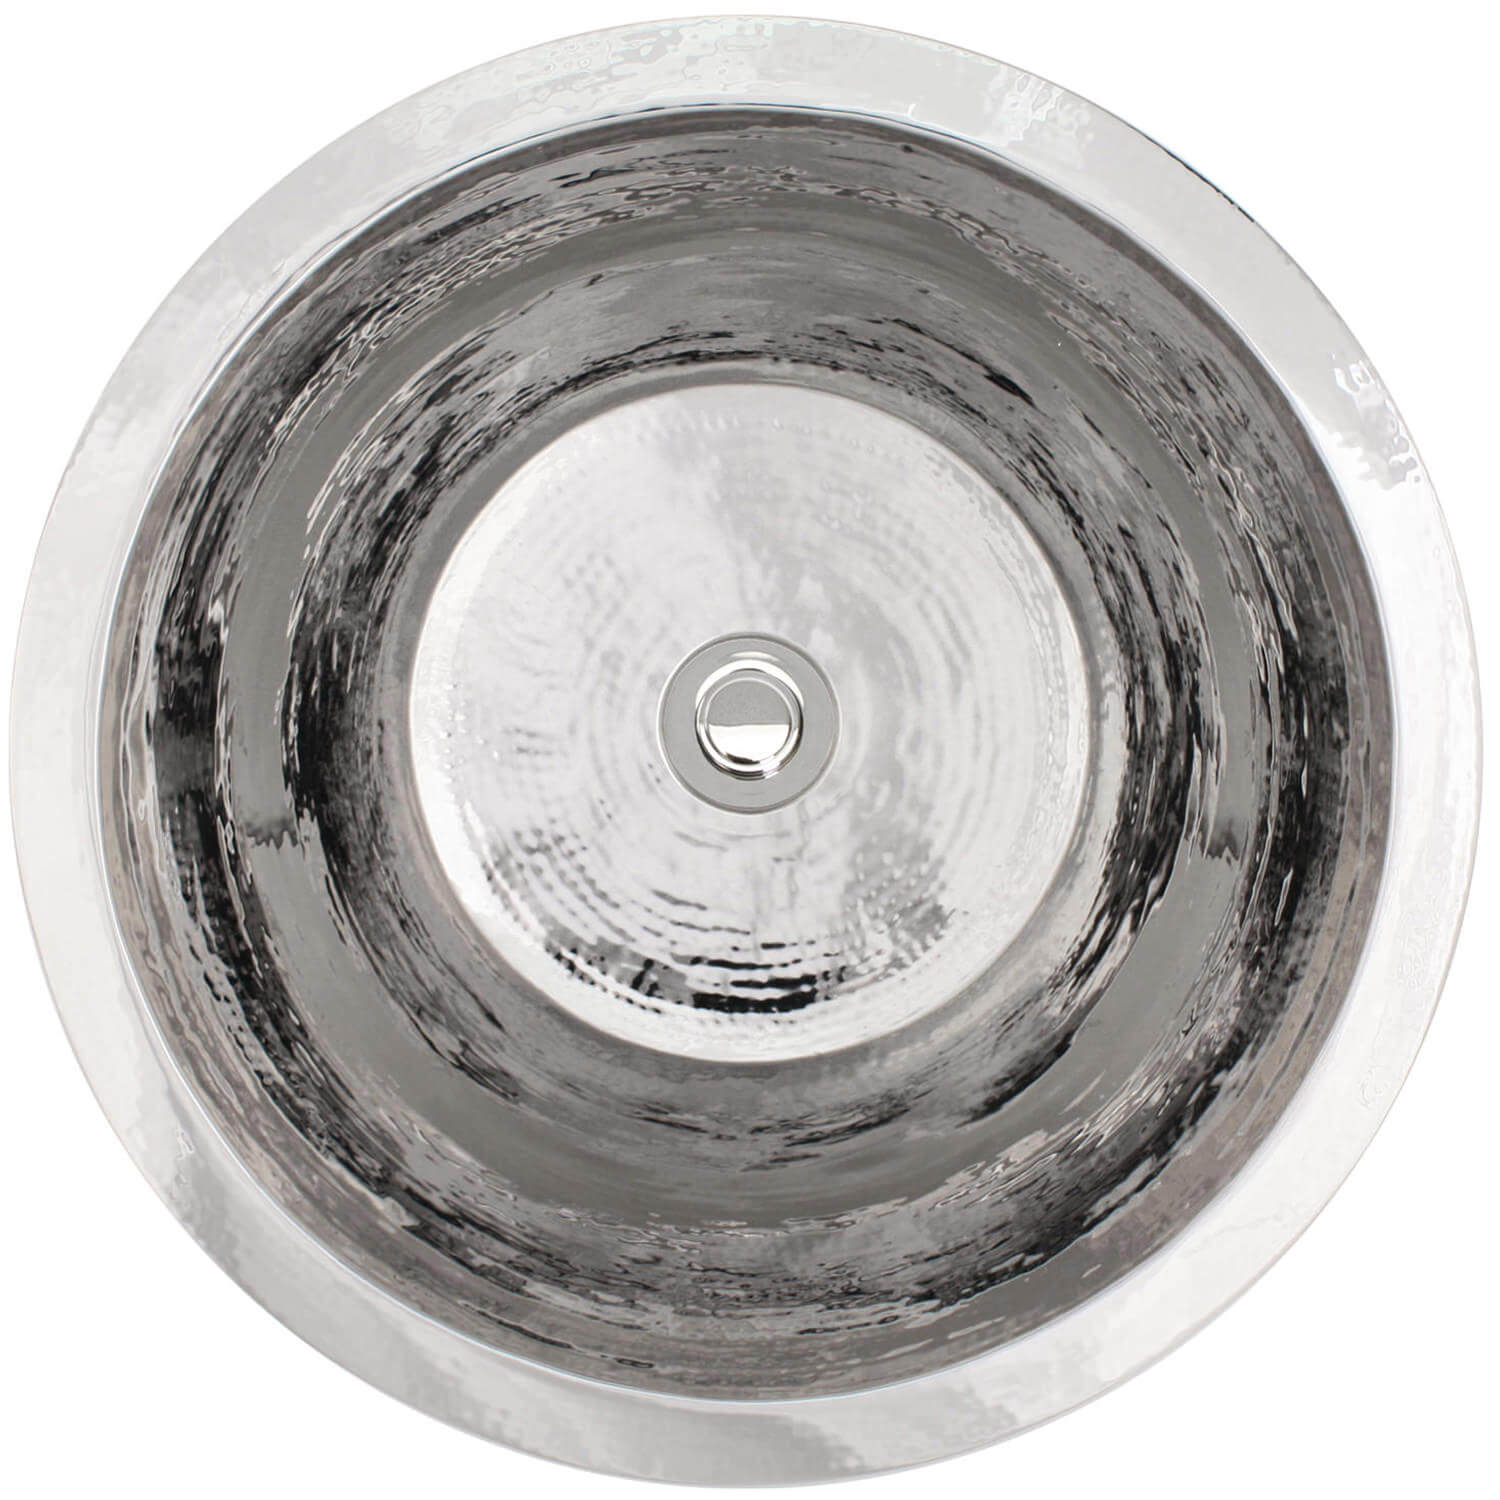 "Linkasink Kitchen Bar Sinks - Stainless Steel - C016-PS Small Flat Round Sink - 2"" drain - Polished Stainless Steel"